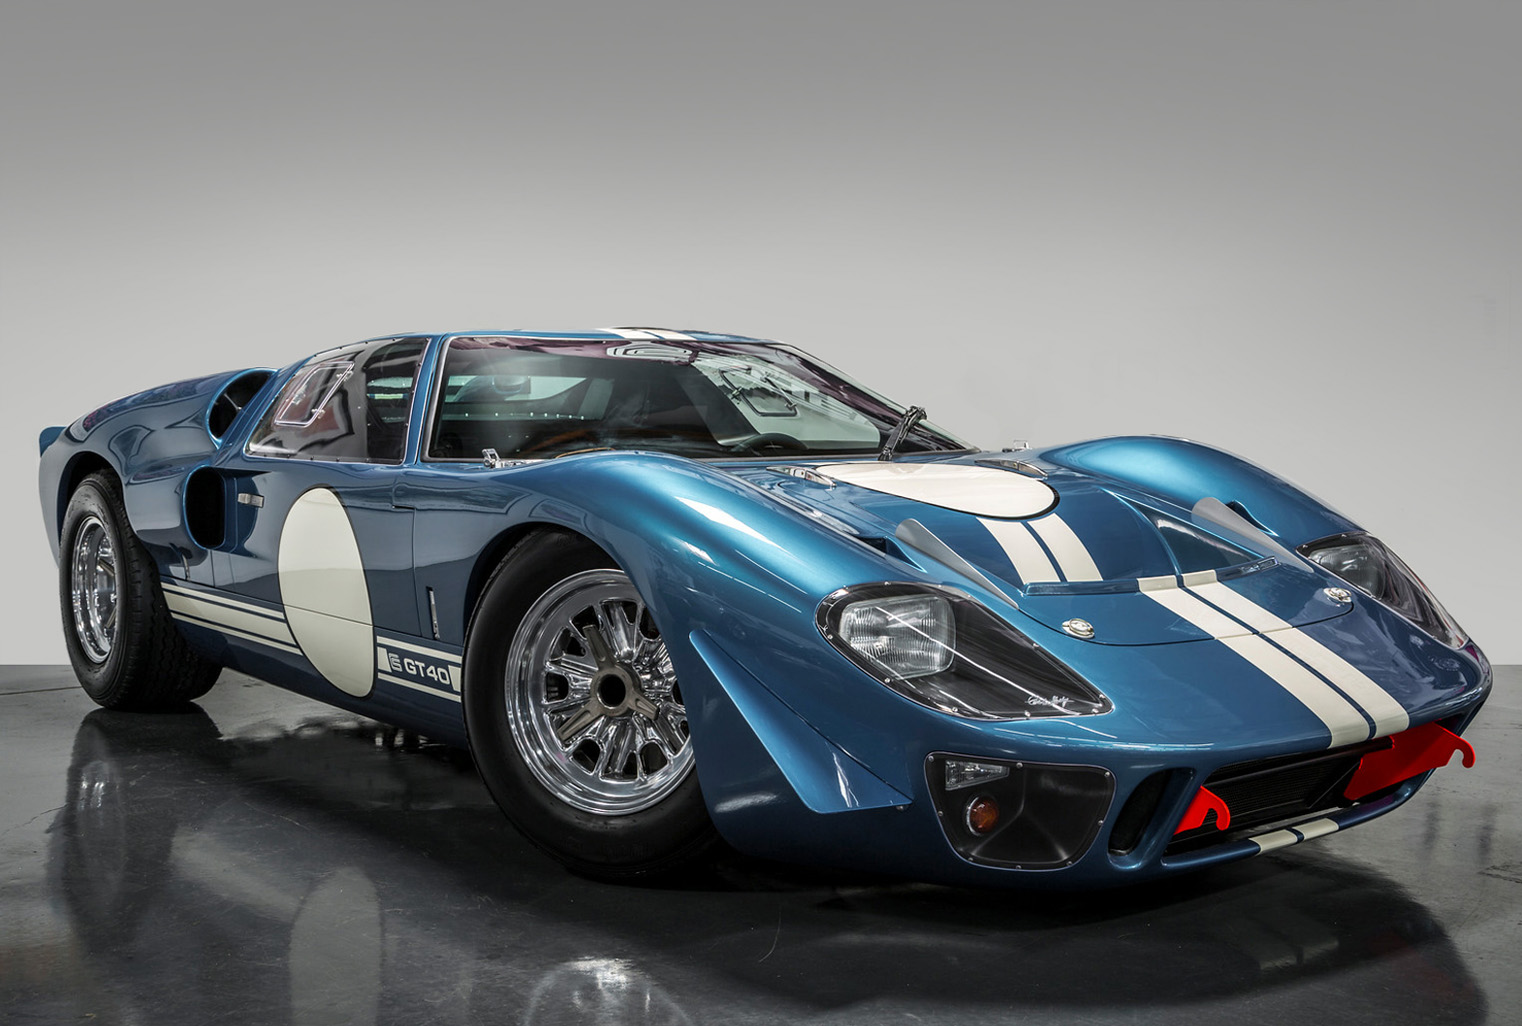 GT40 Superformance Mark II car for sale